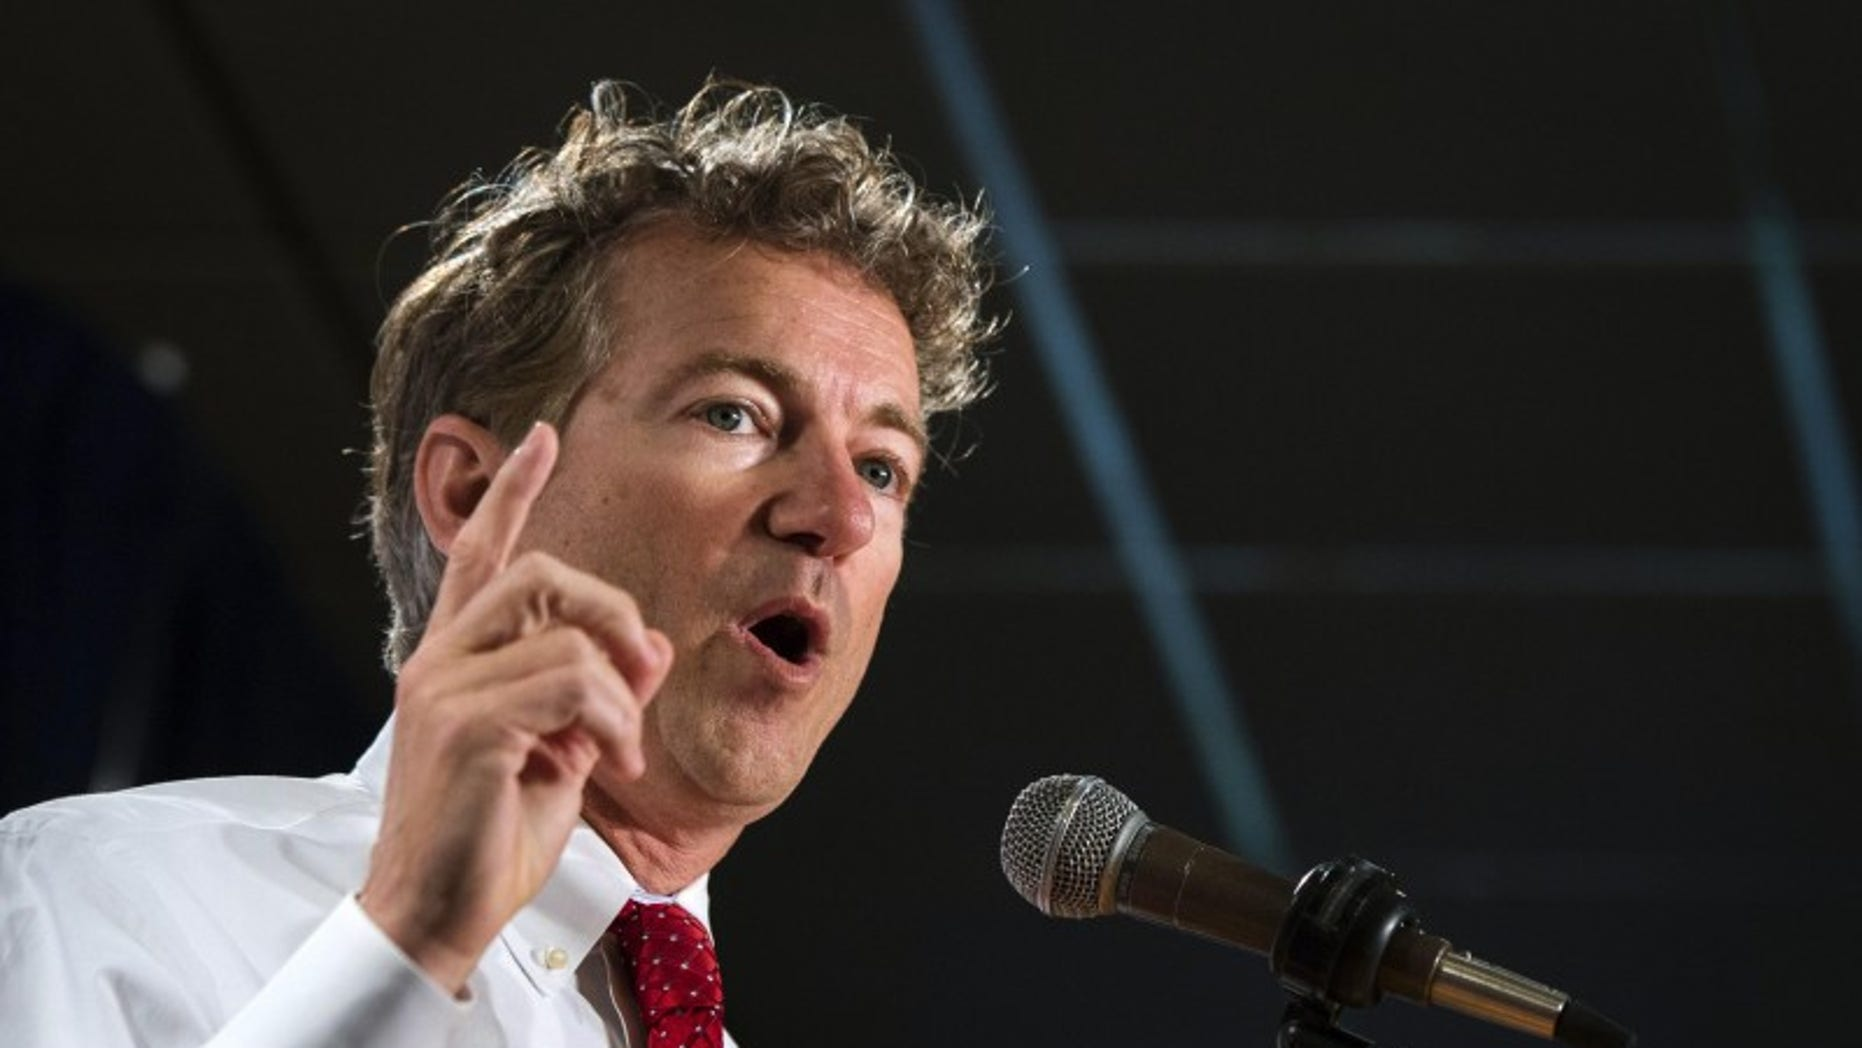 Republican Kentucky Sen. Rand Paul speaks during the inaugural Freedom Summit meeting for conservative speakers in Manchester, N.H., April 12, 2014. (REUTERS/Lucas Jackson)